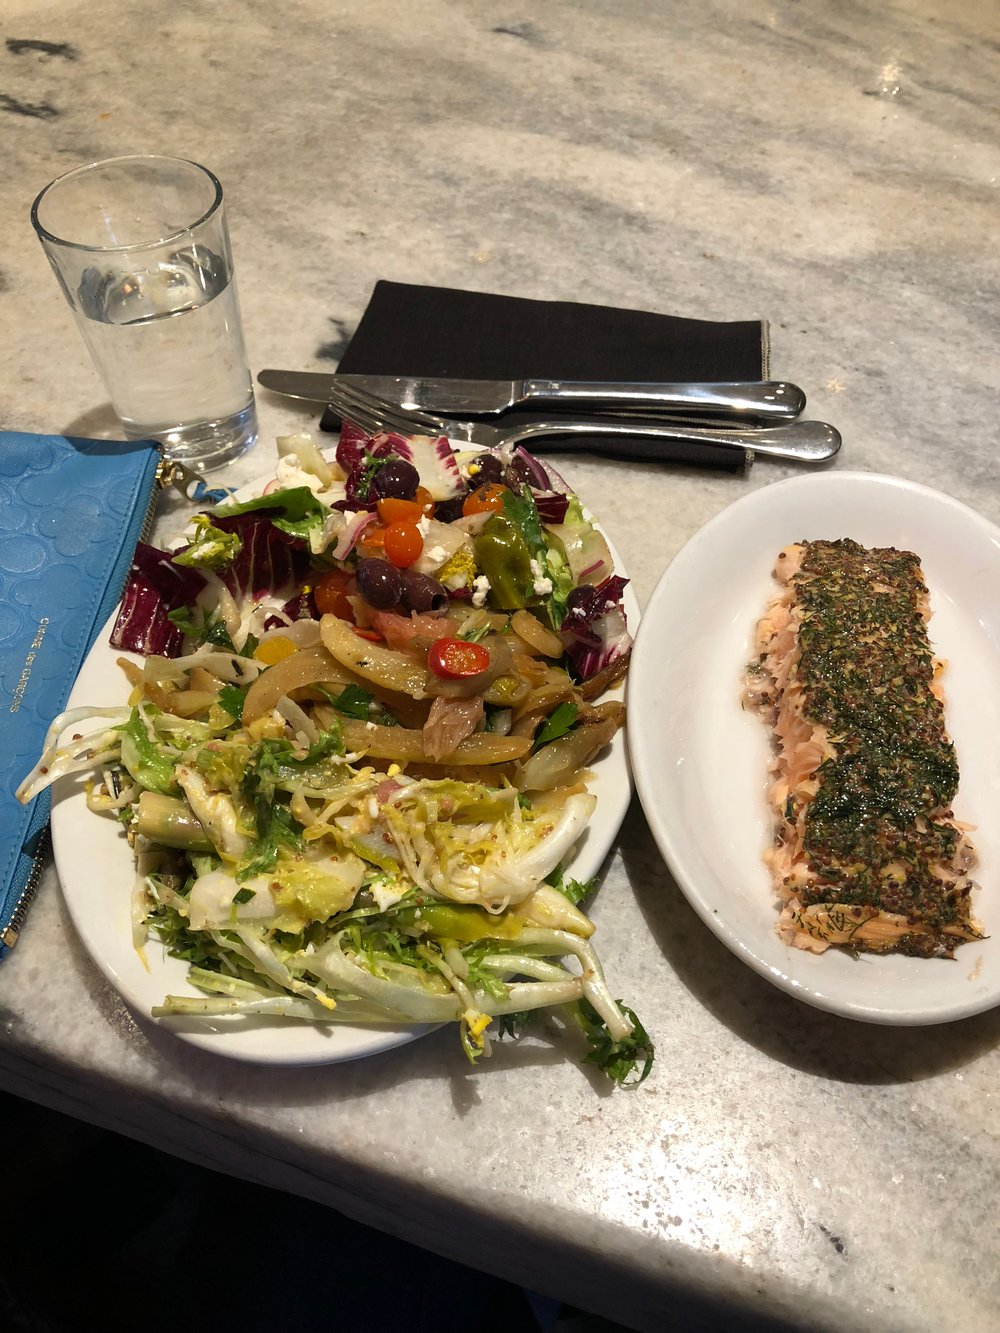 My latest meal at Gjusta - a selection of salads and a slab of perfectly grilled salmon.